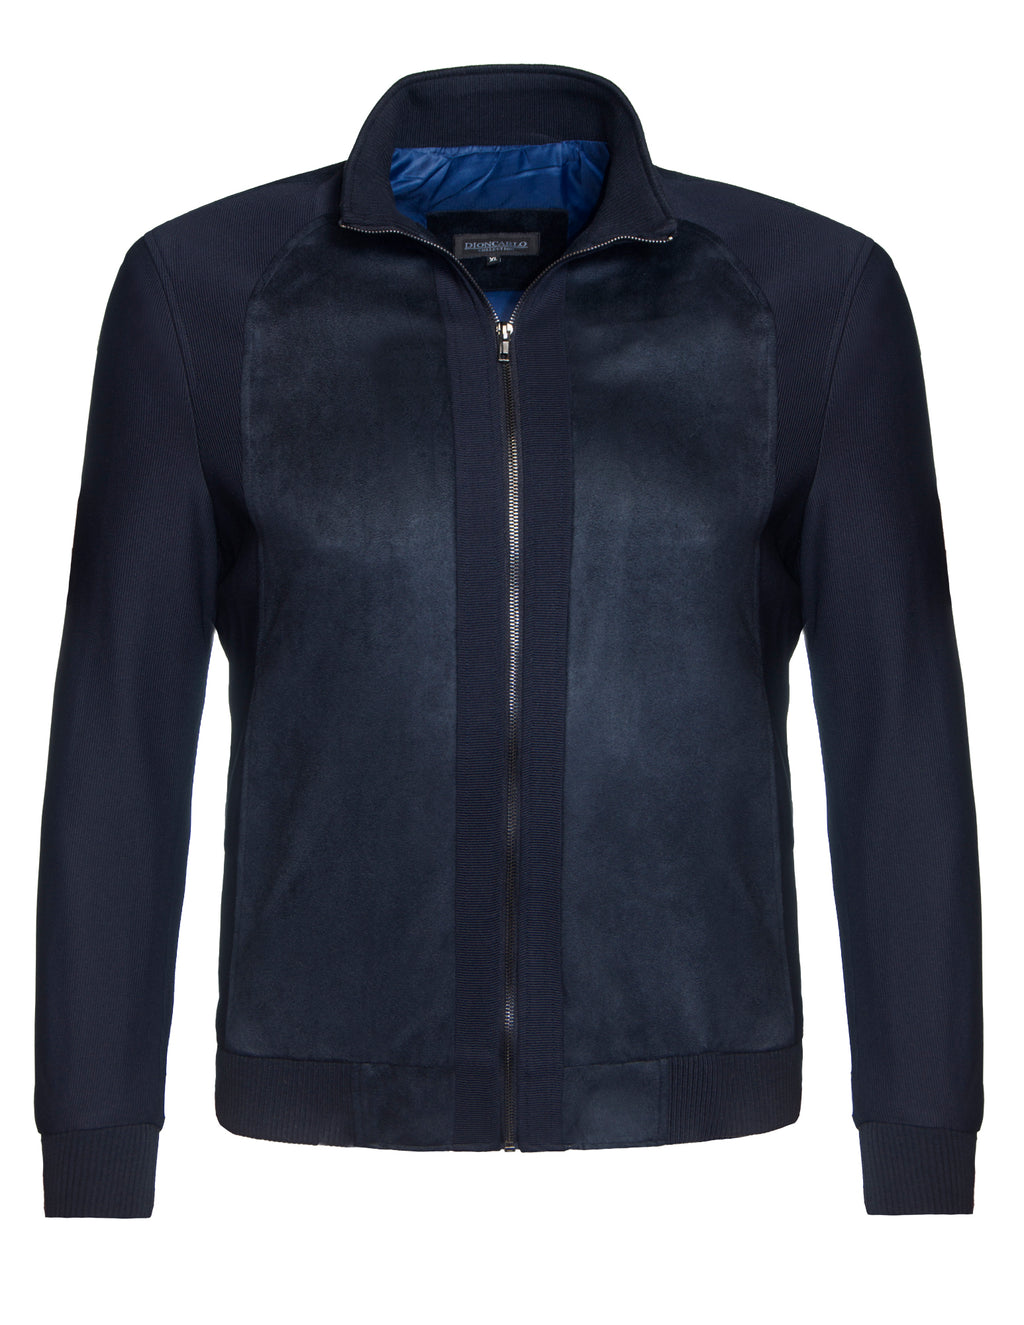 Dion Carlo Navy 156 Knitted Sleeve Full Zip Jacket